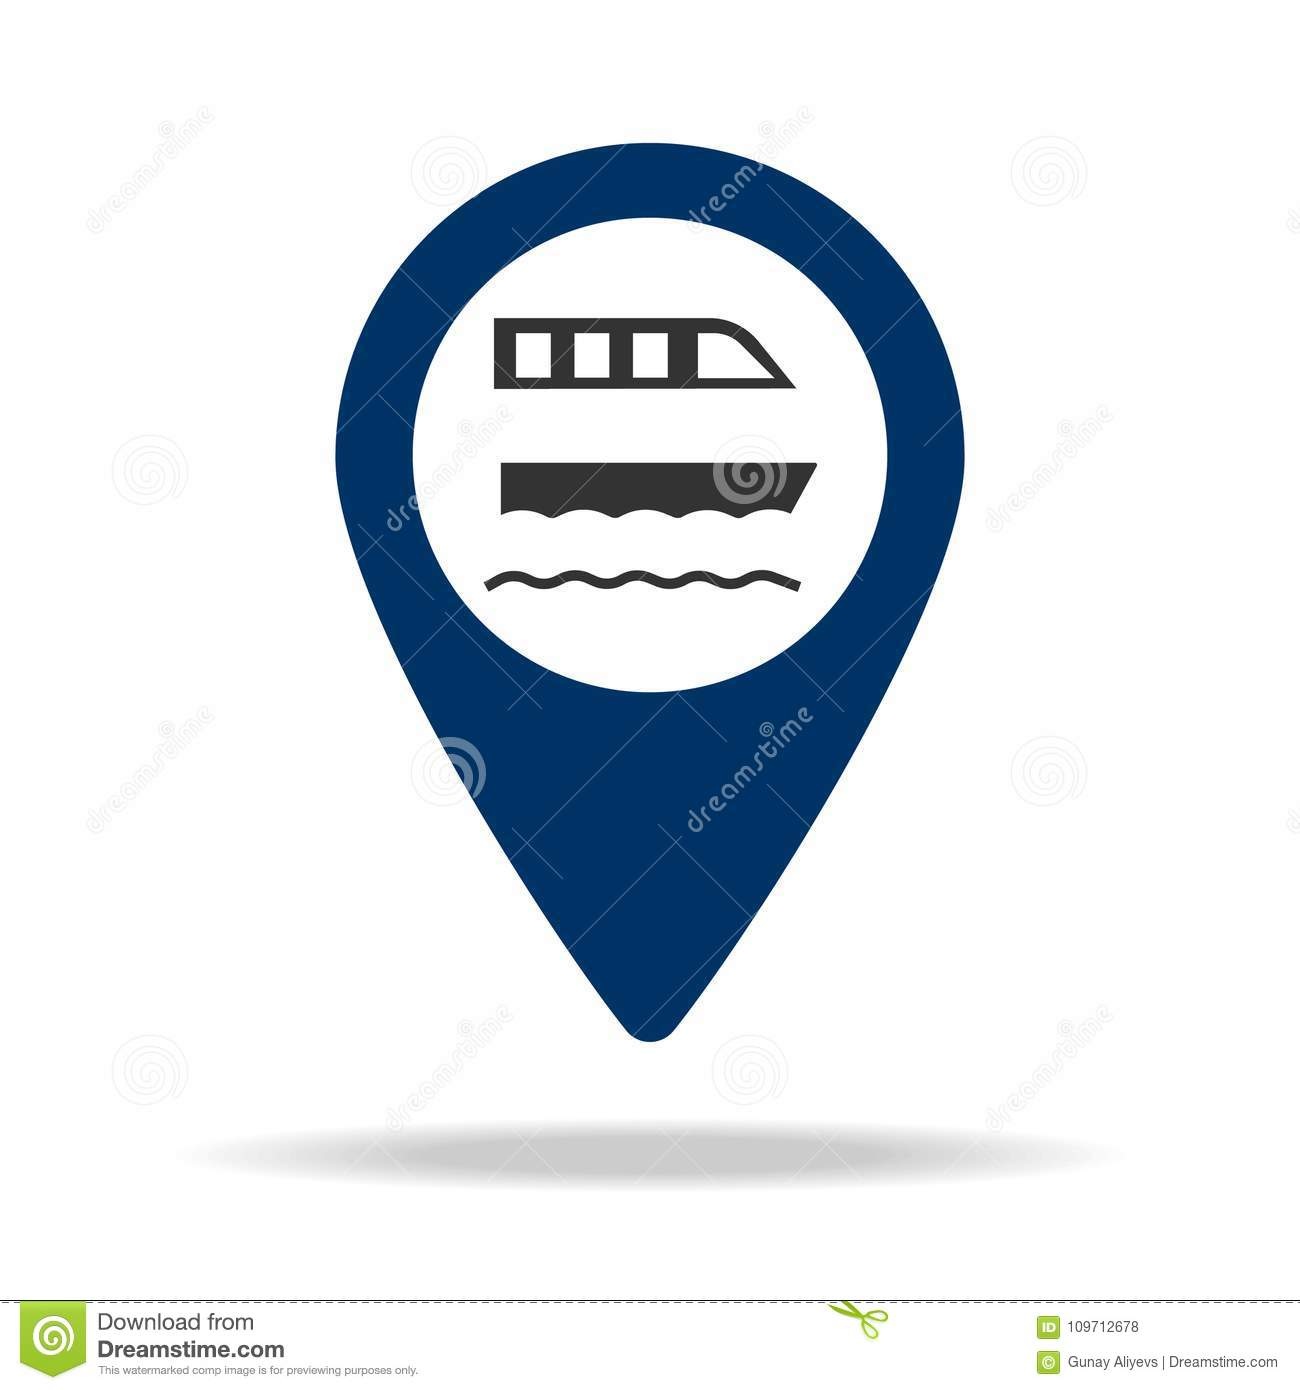 Ferry Parking Place In Blue Map Pin Icon  Element Of Map Point For